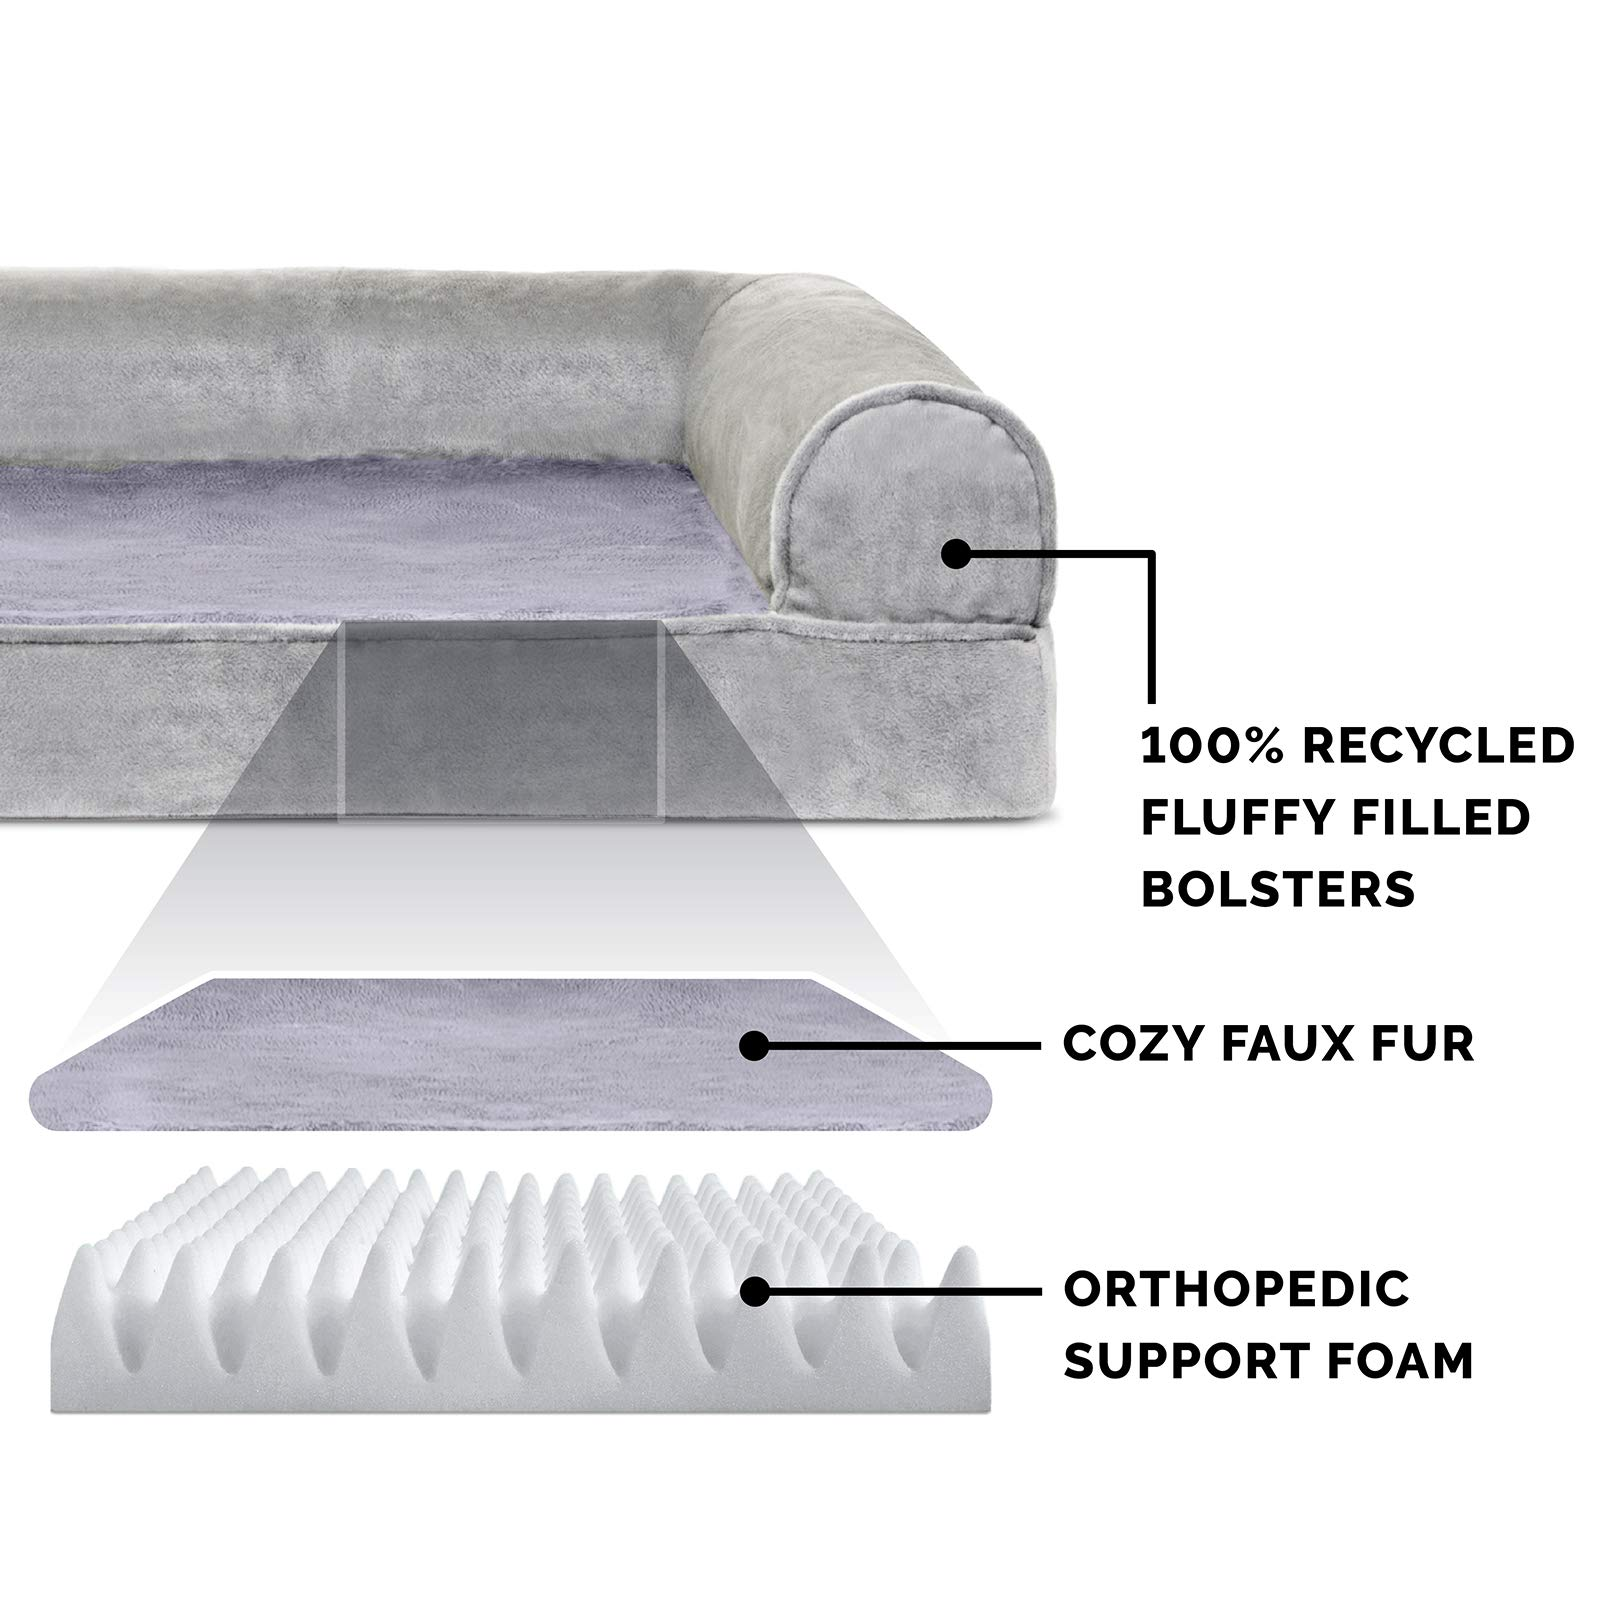 FurHaven Pet Dog Bed | Orthopedic Faux Fur & Velvet Sofa-Style Couch Pet Bed for Dogs & Cats, Smoke Gray, Jumbo by Furhaven Pet (Image #4)